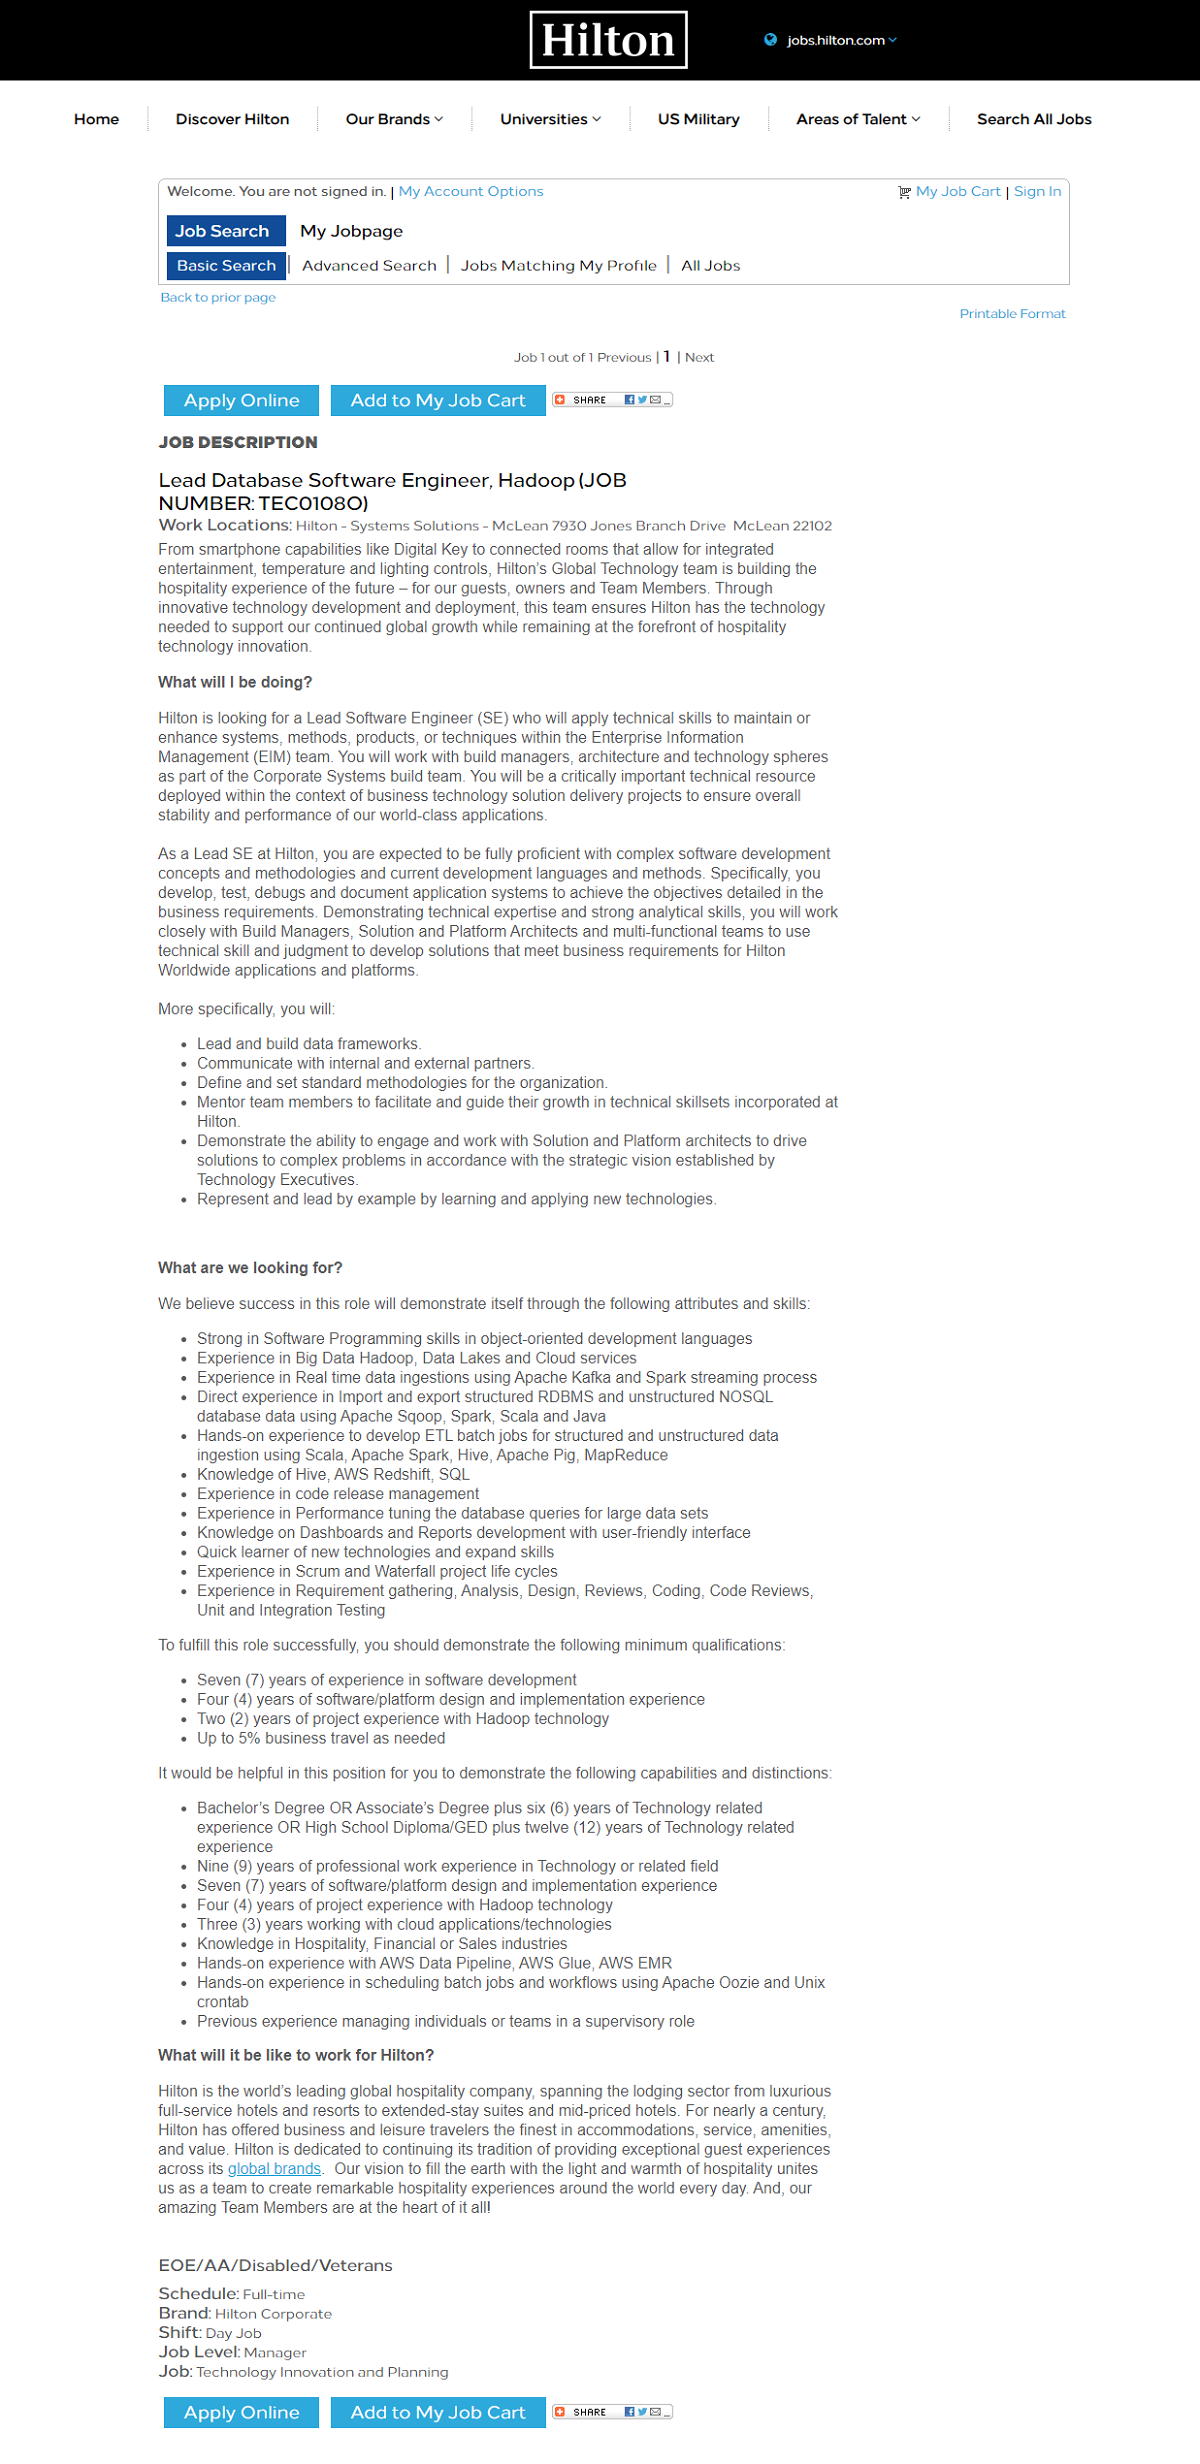 Hilton Taleo Job Description Page Before